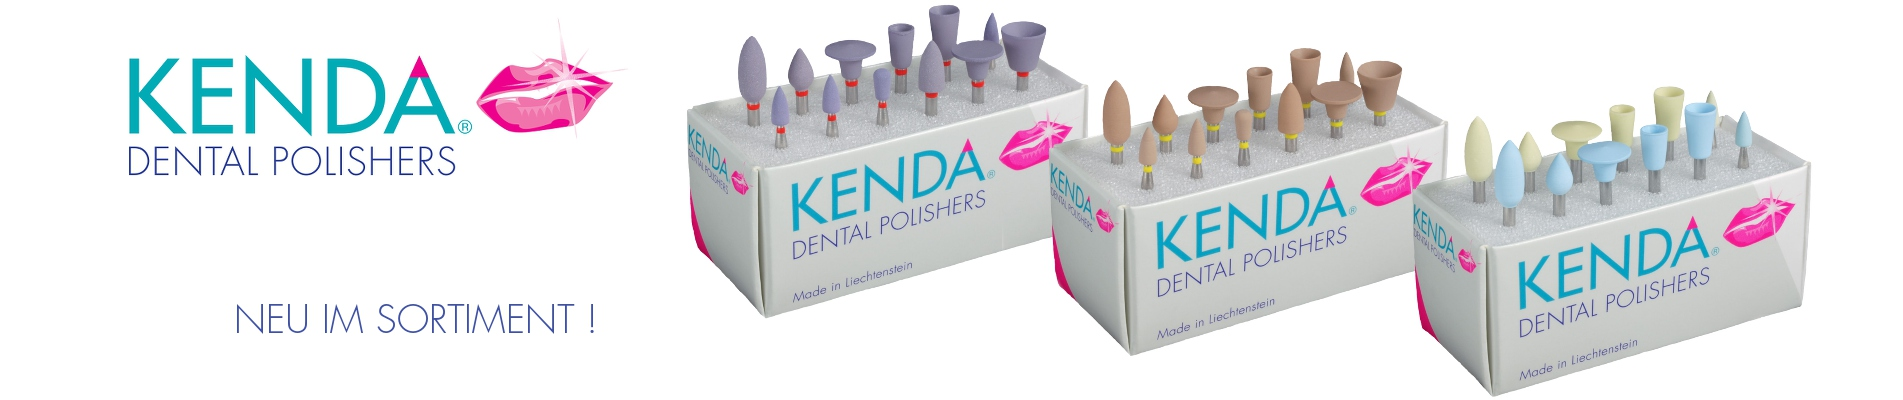 KENDA Dental Polishers